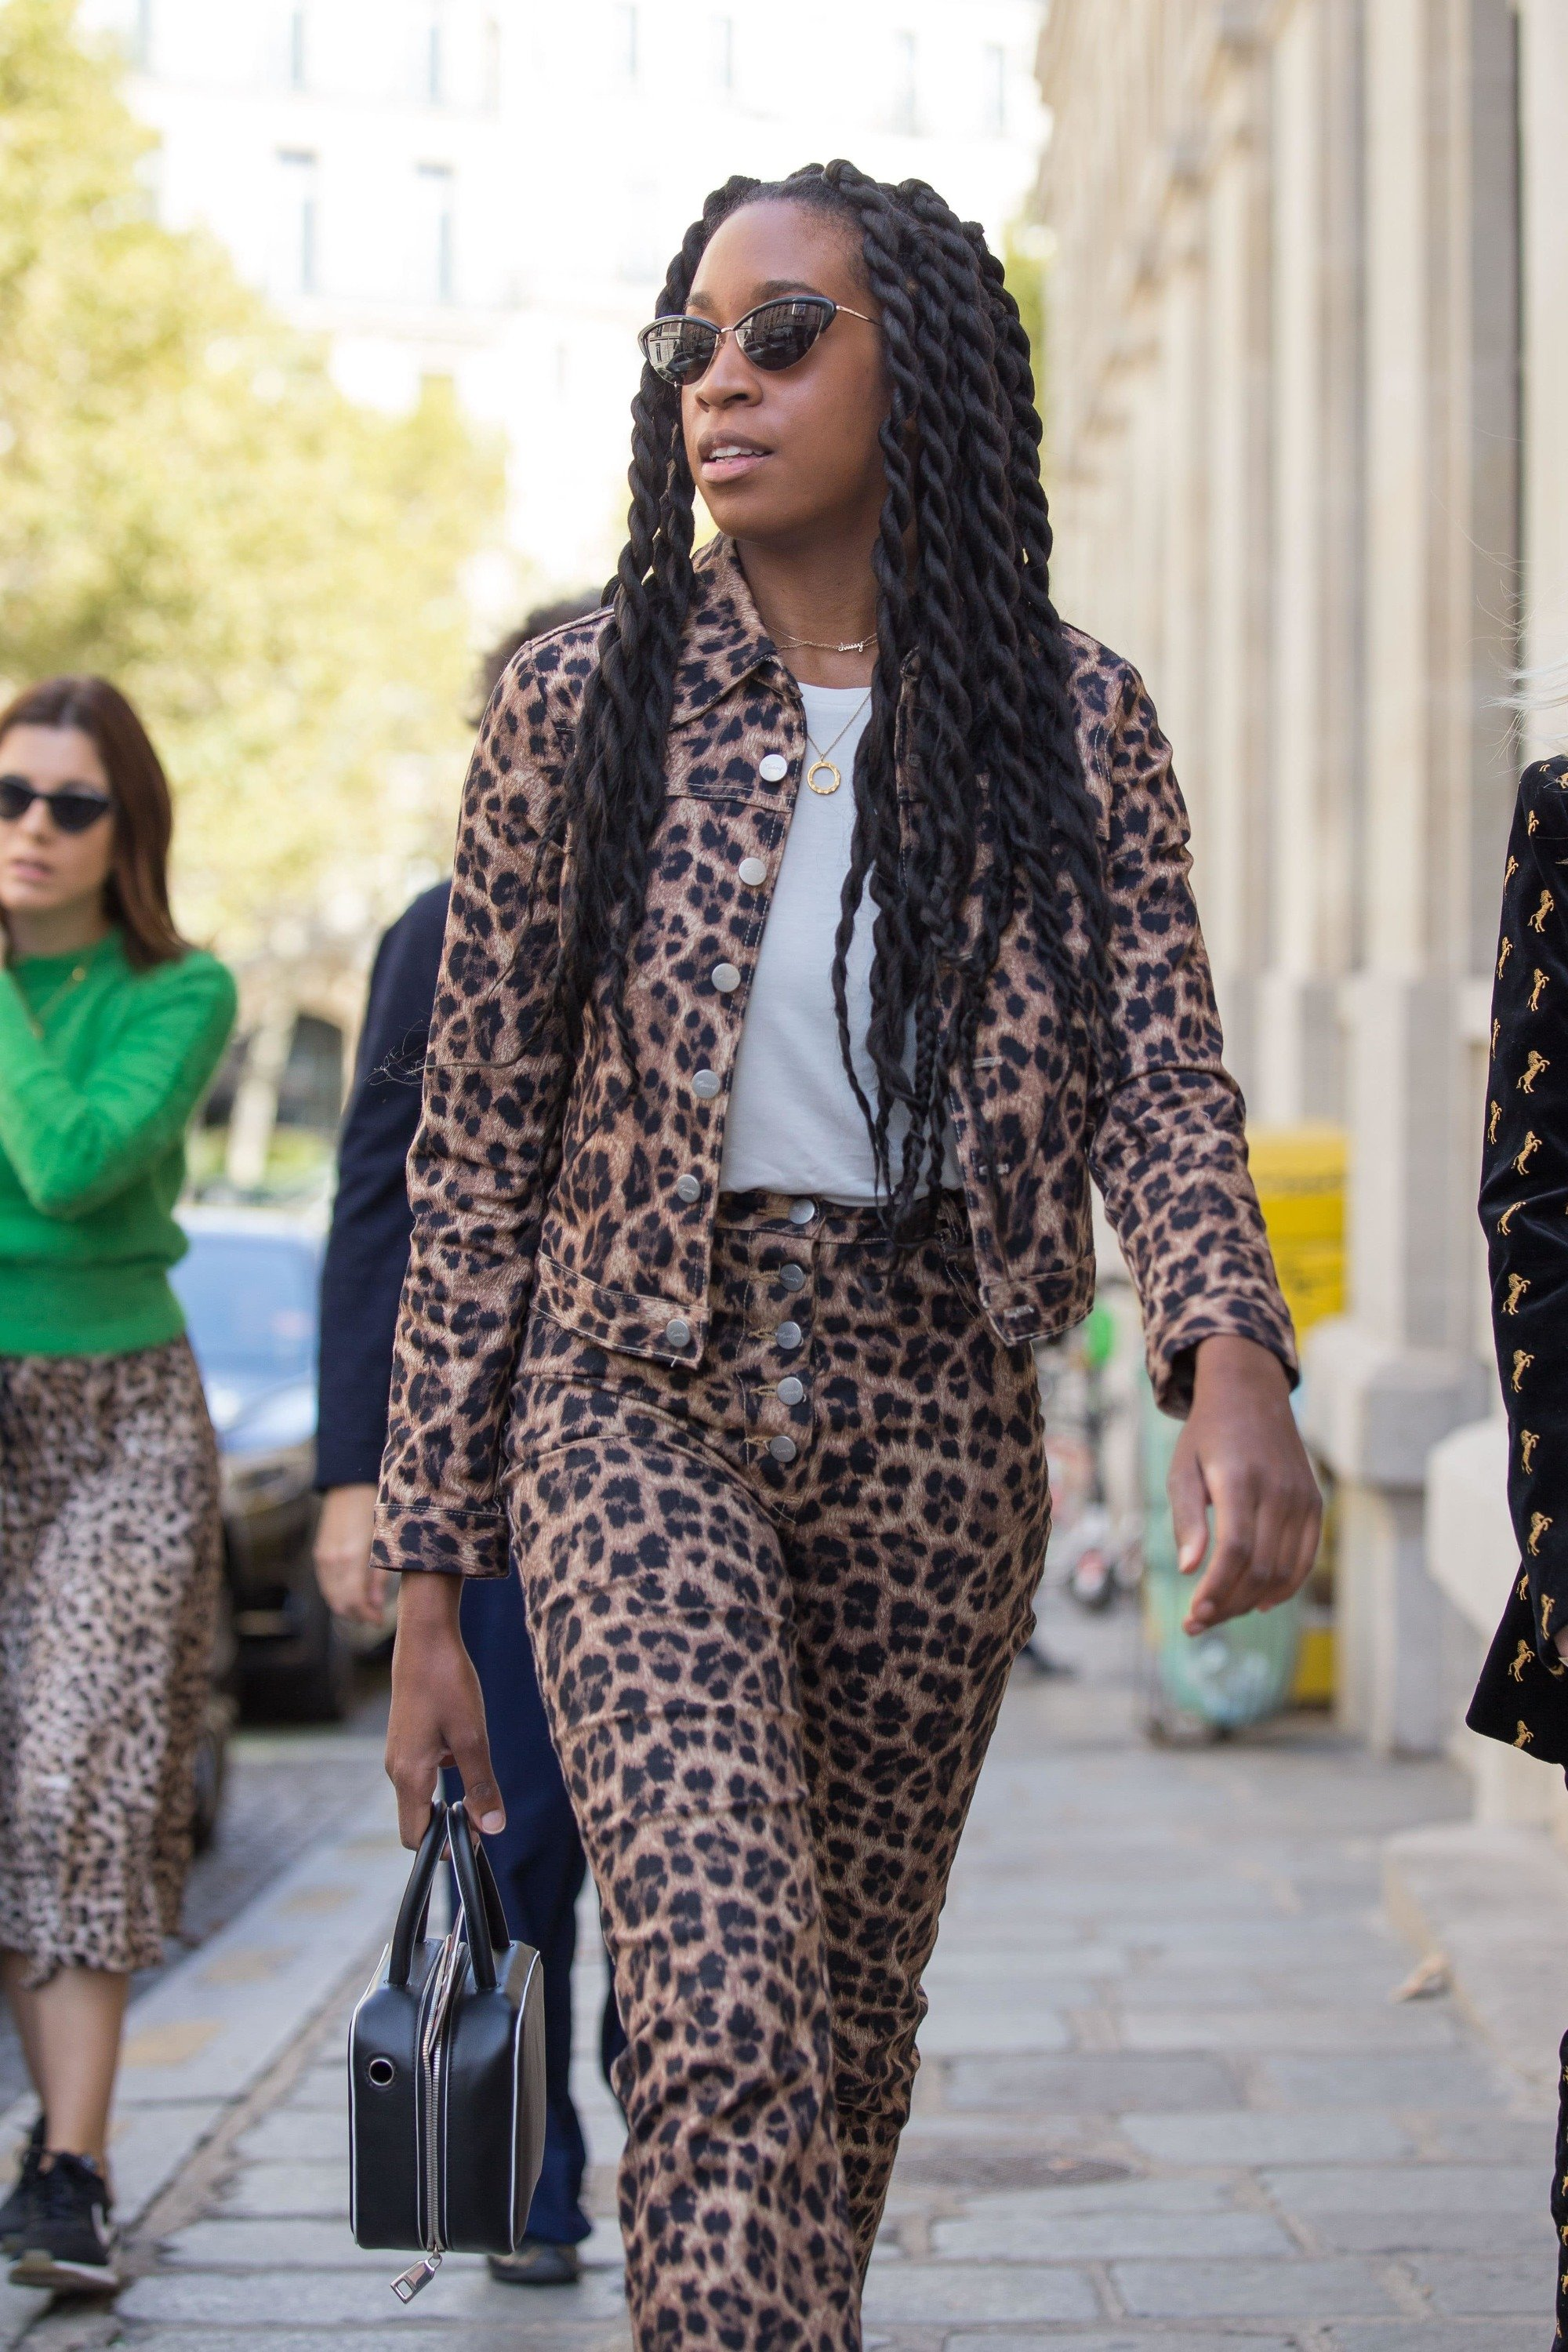 Chrissy Ford with marley twists on the street at fashion week, wearing leopard print with sunglasses while walking